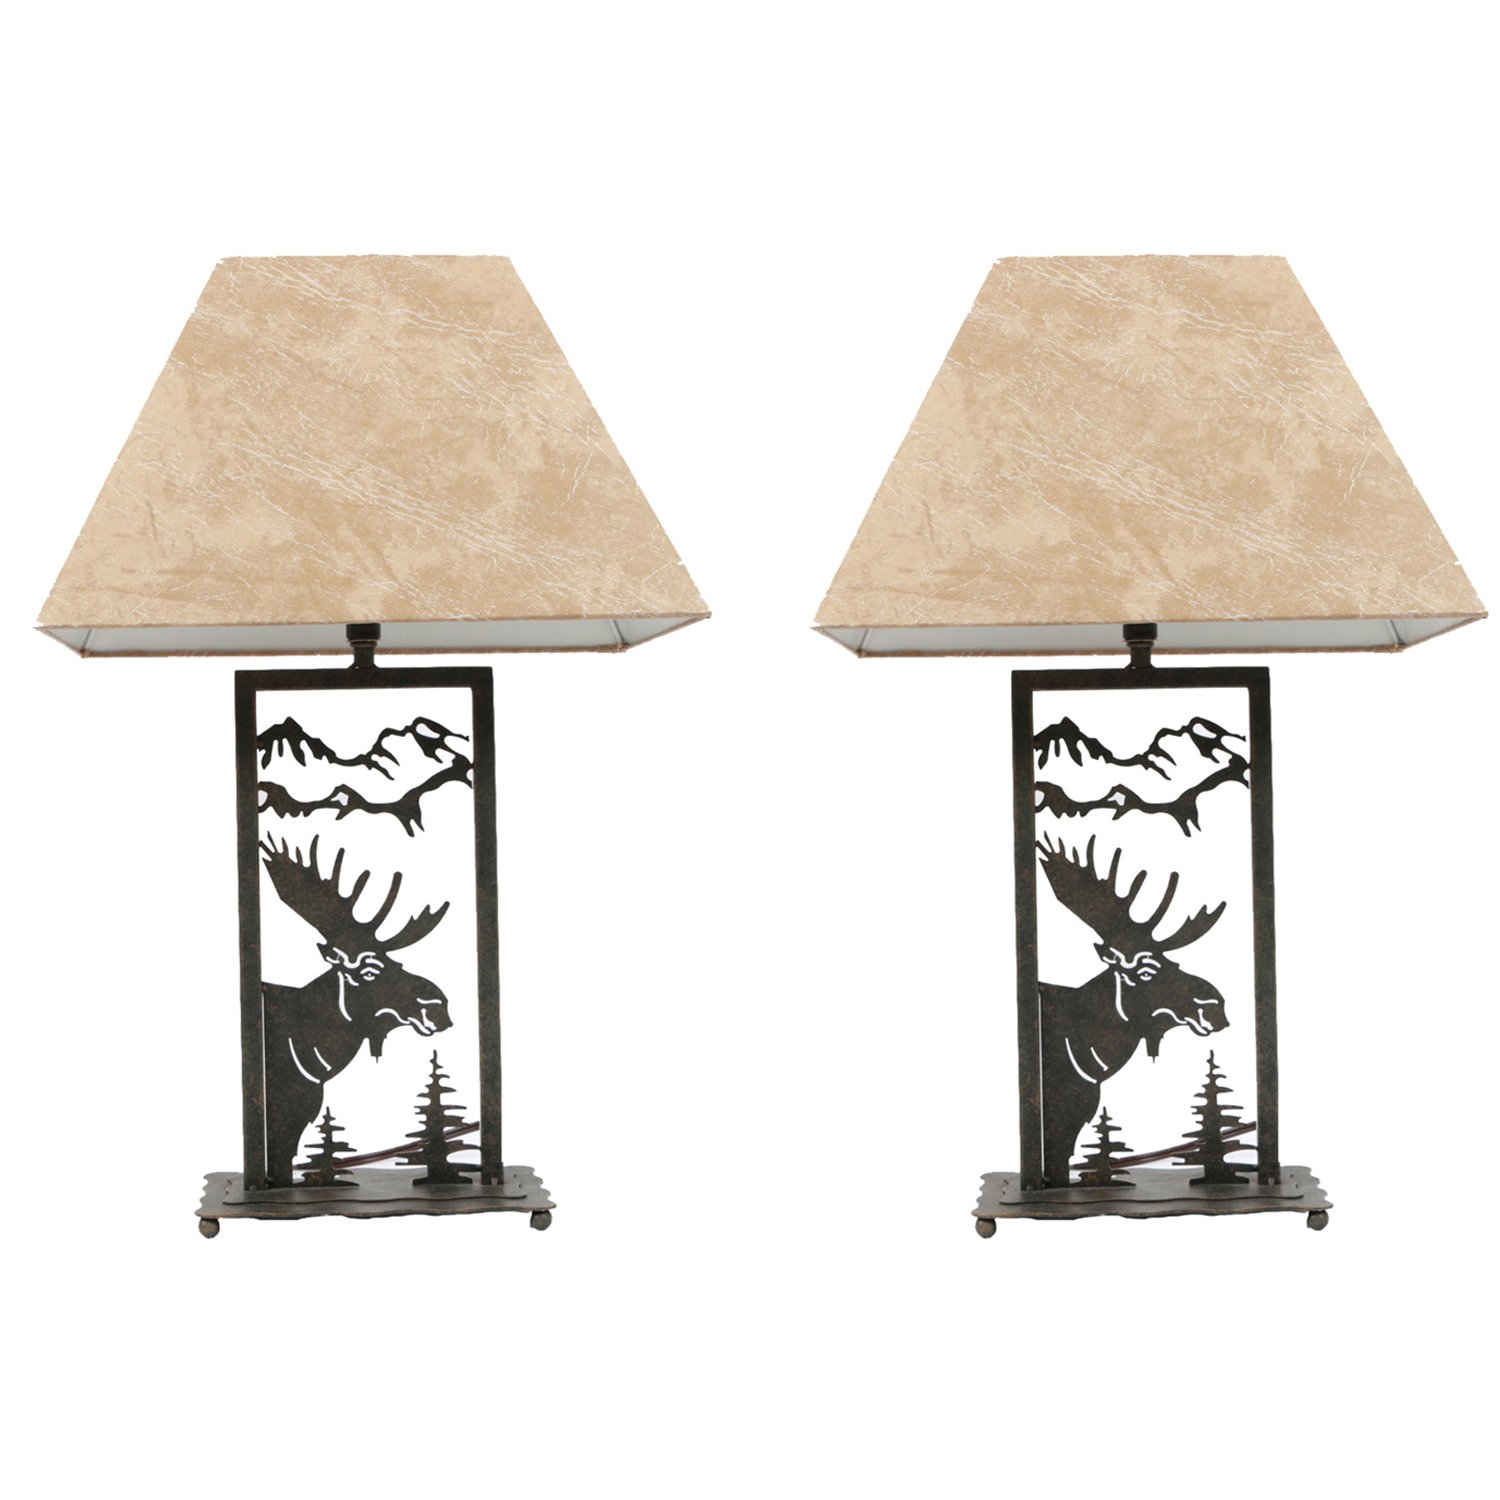 DEI Moose Die-Cut Lamp Set of 2 Décor, Medium, Black